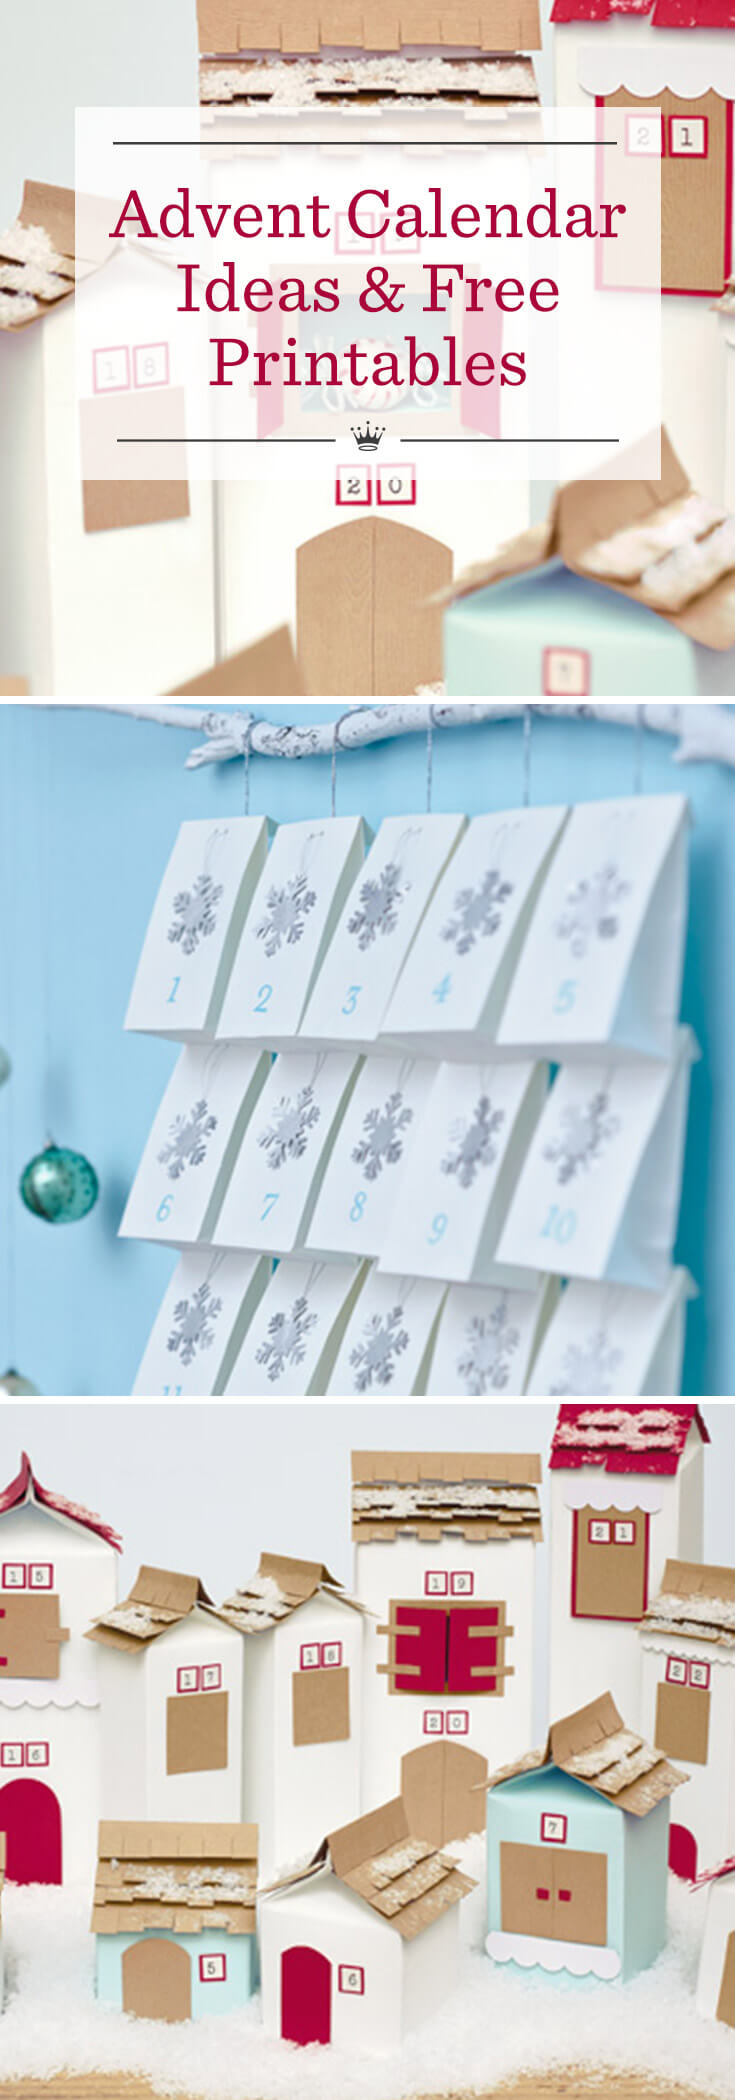 Diy Advent Calendar Ideas Hallmark Ideas Inspiration